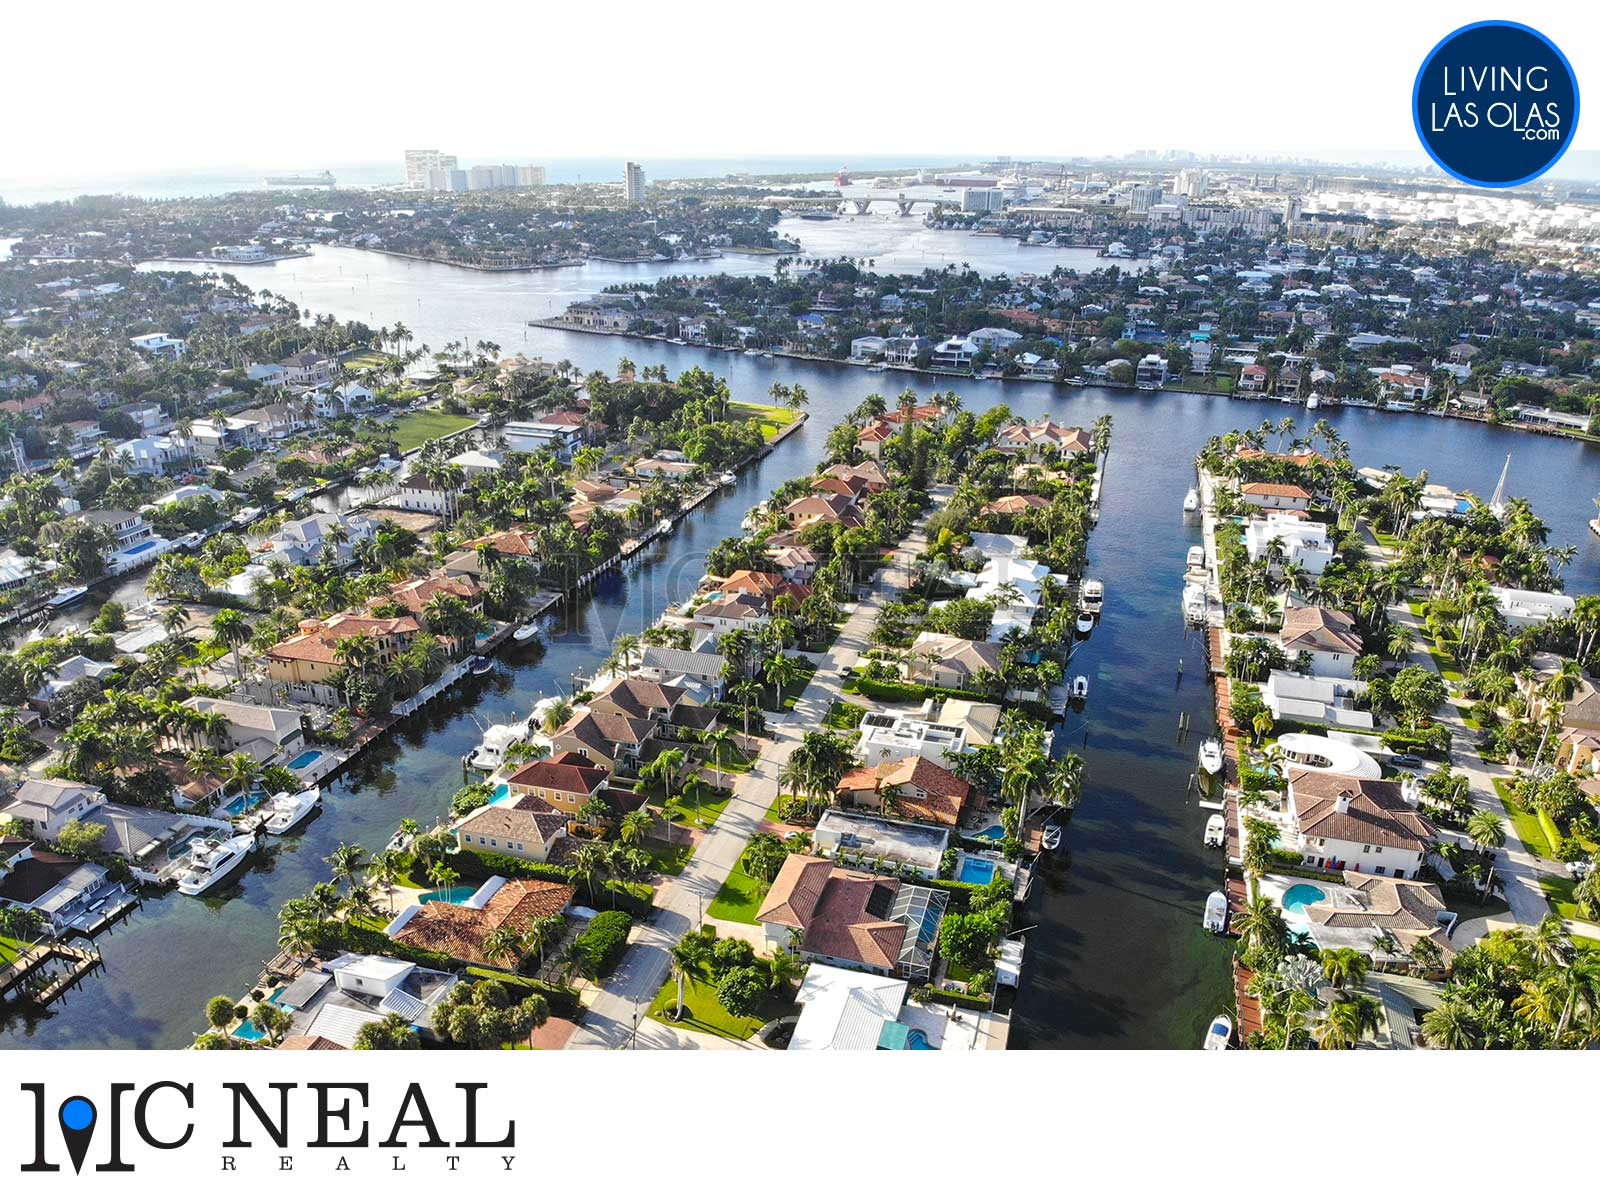 Las Olas Isles Homes Real Estate 01